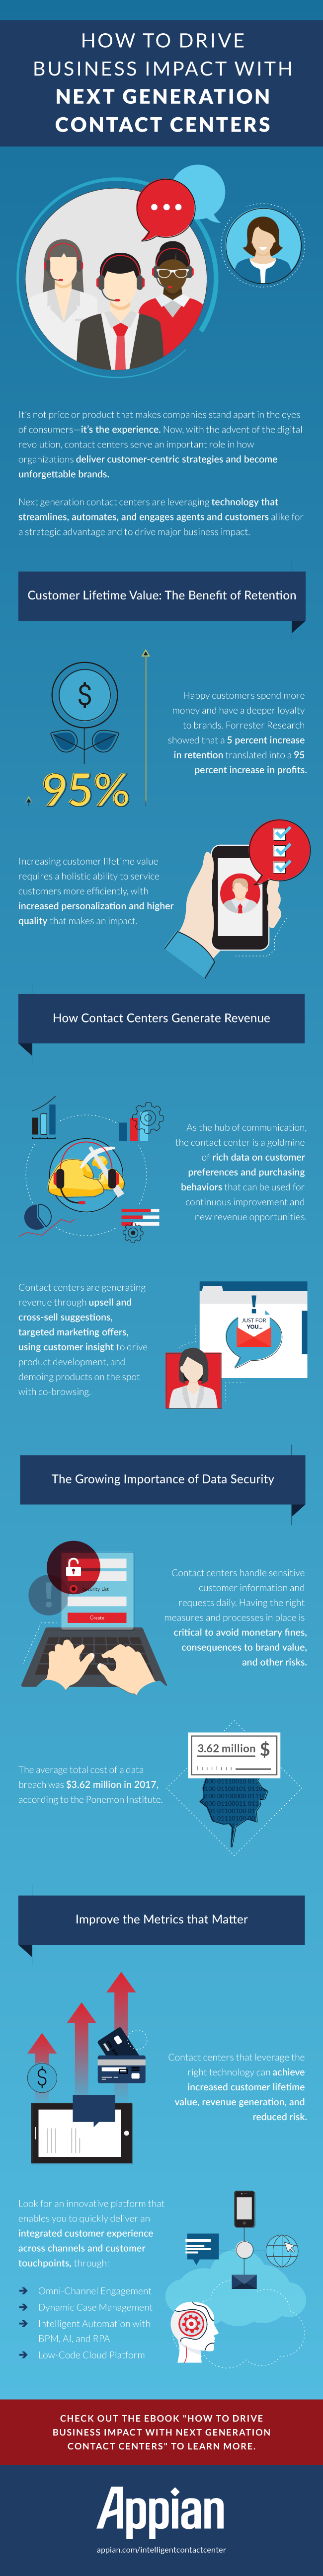 how to drive business with next generation contact centers infographic